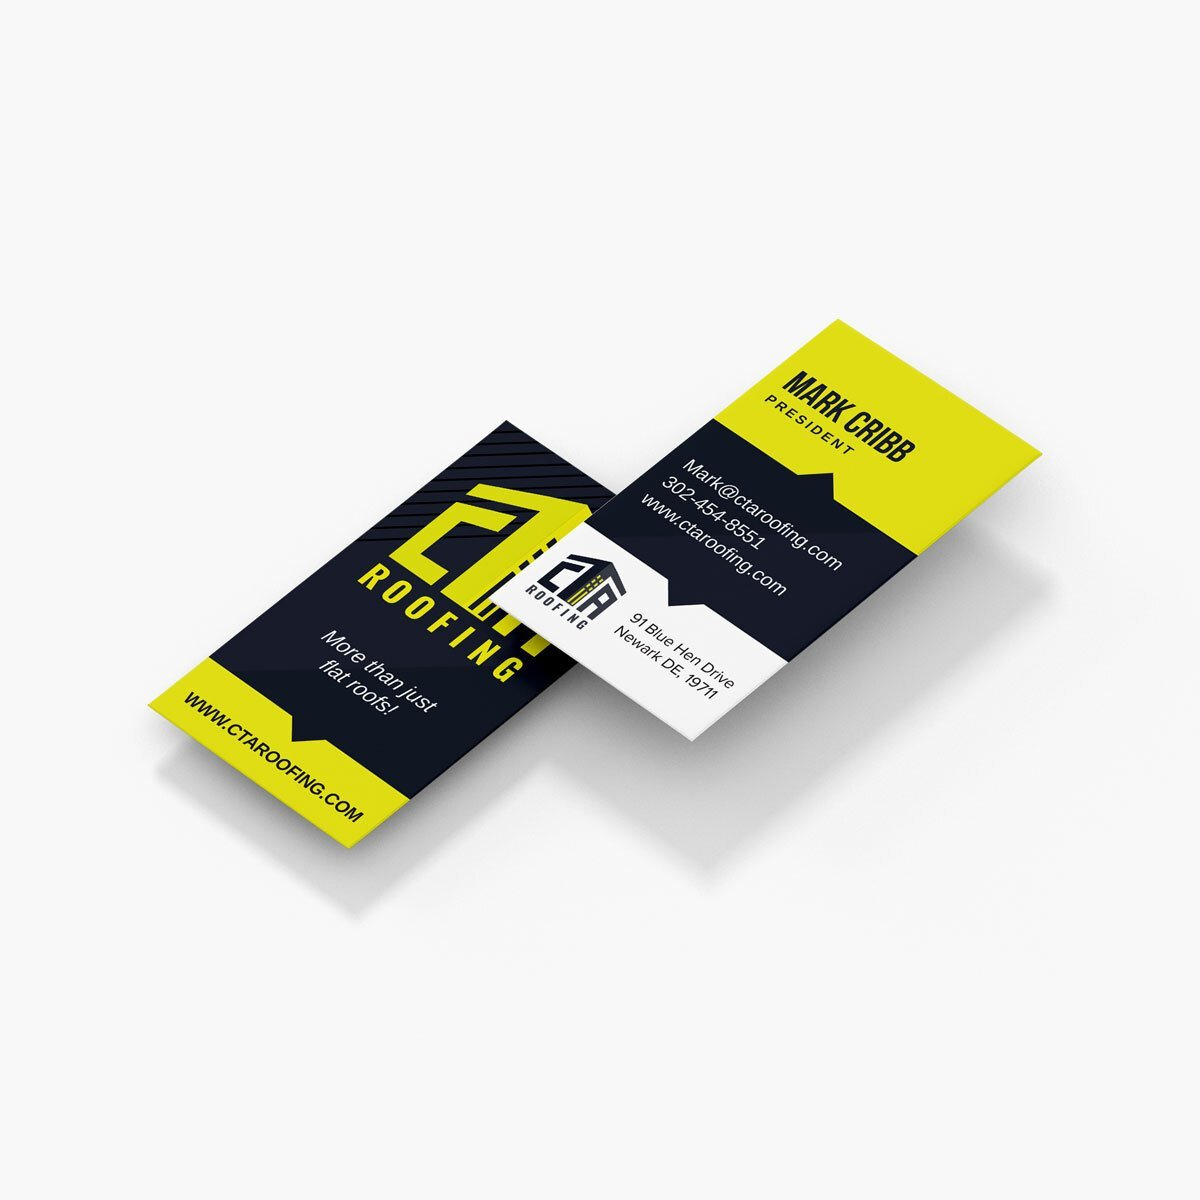 Roofing company business card design from BrandSwan, a Delaware branding agency